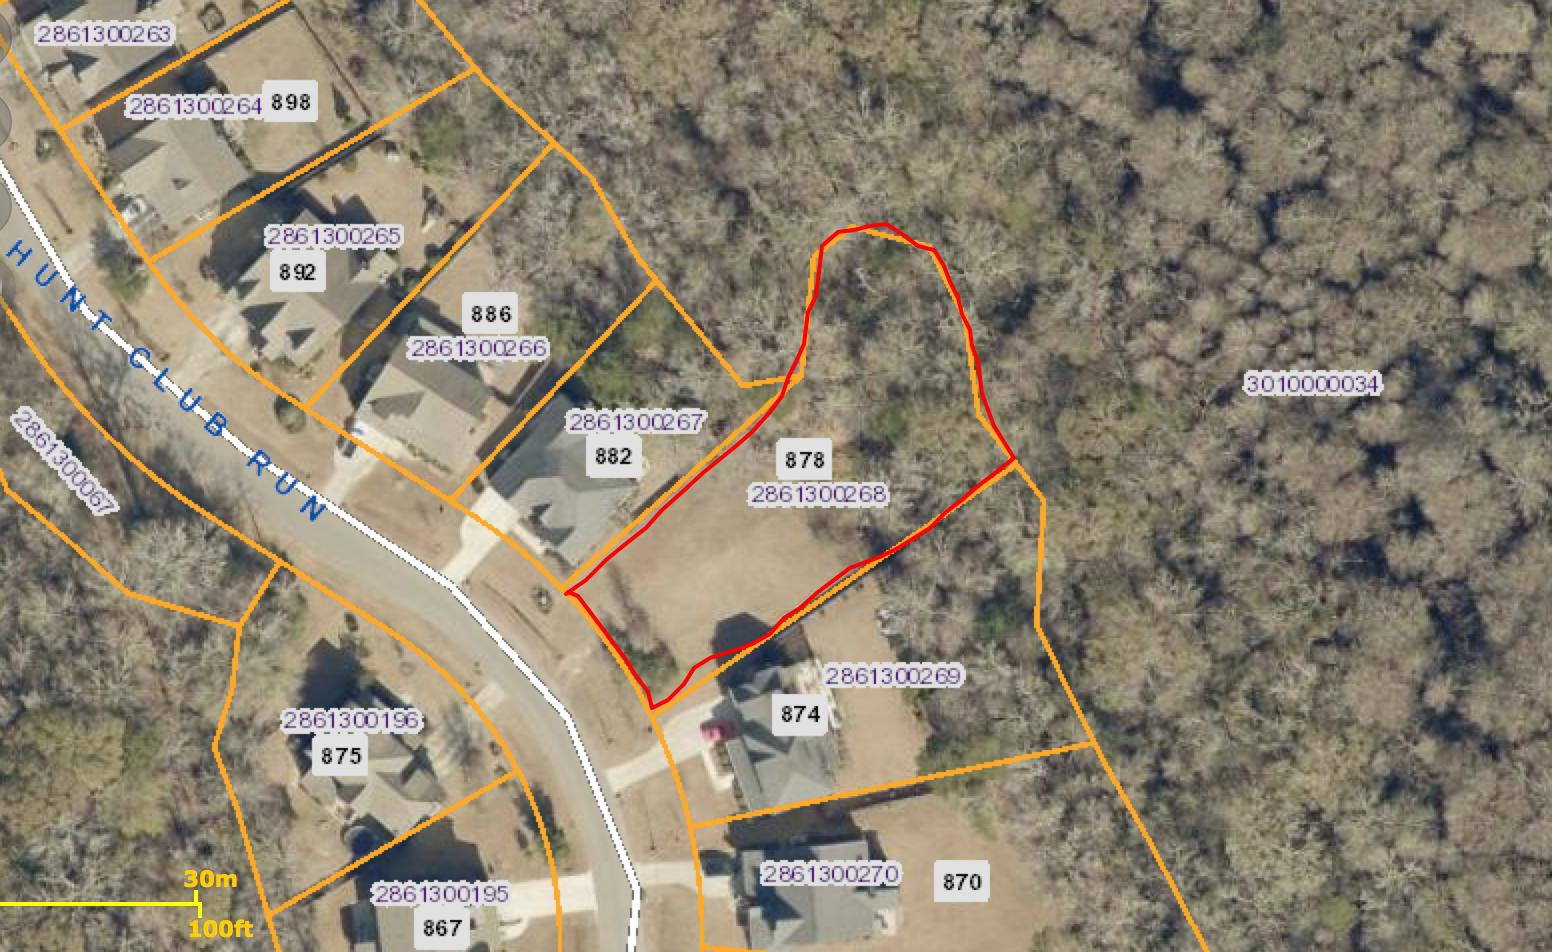 Home for sale 878 Hunt Club Run, Hunt Club, West Ashley, SC